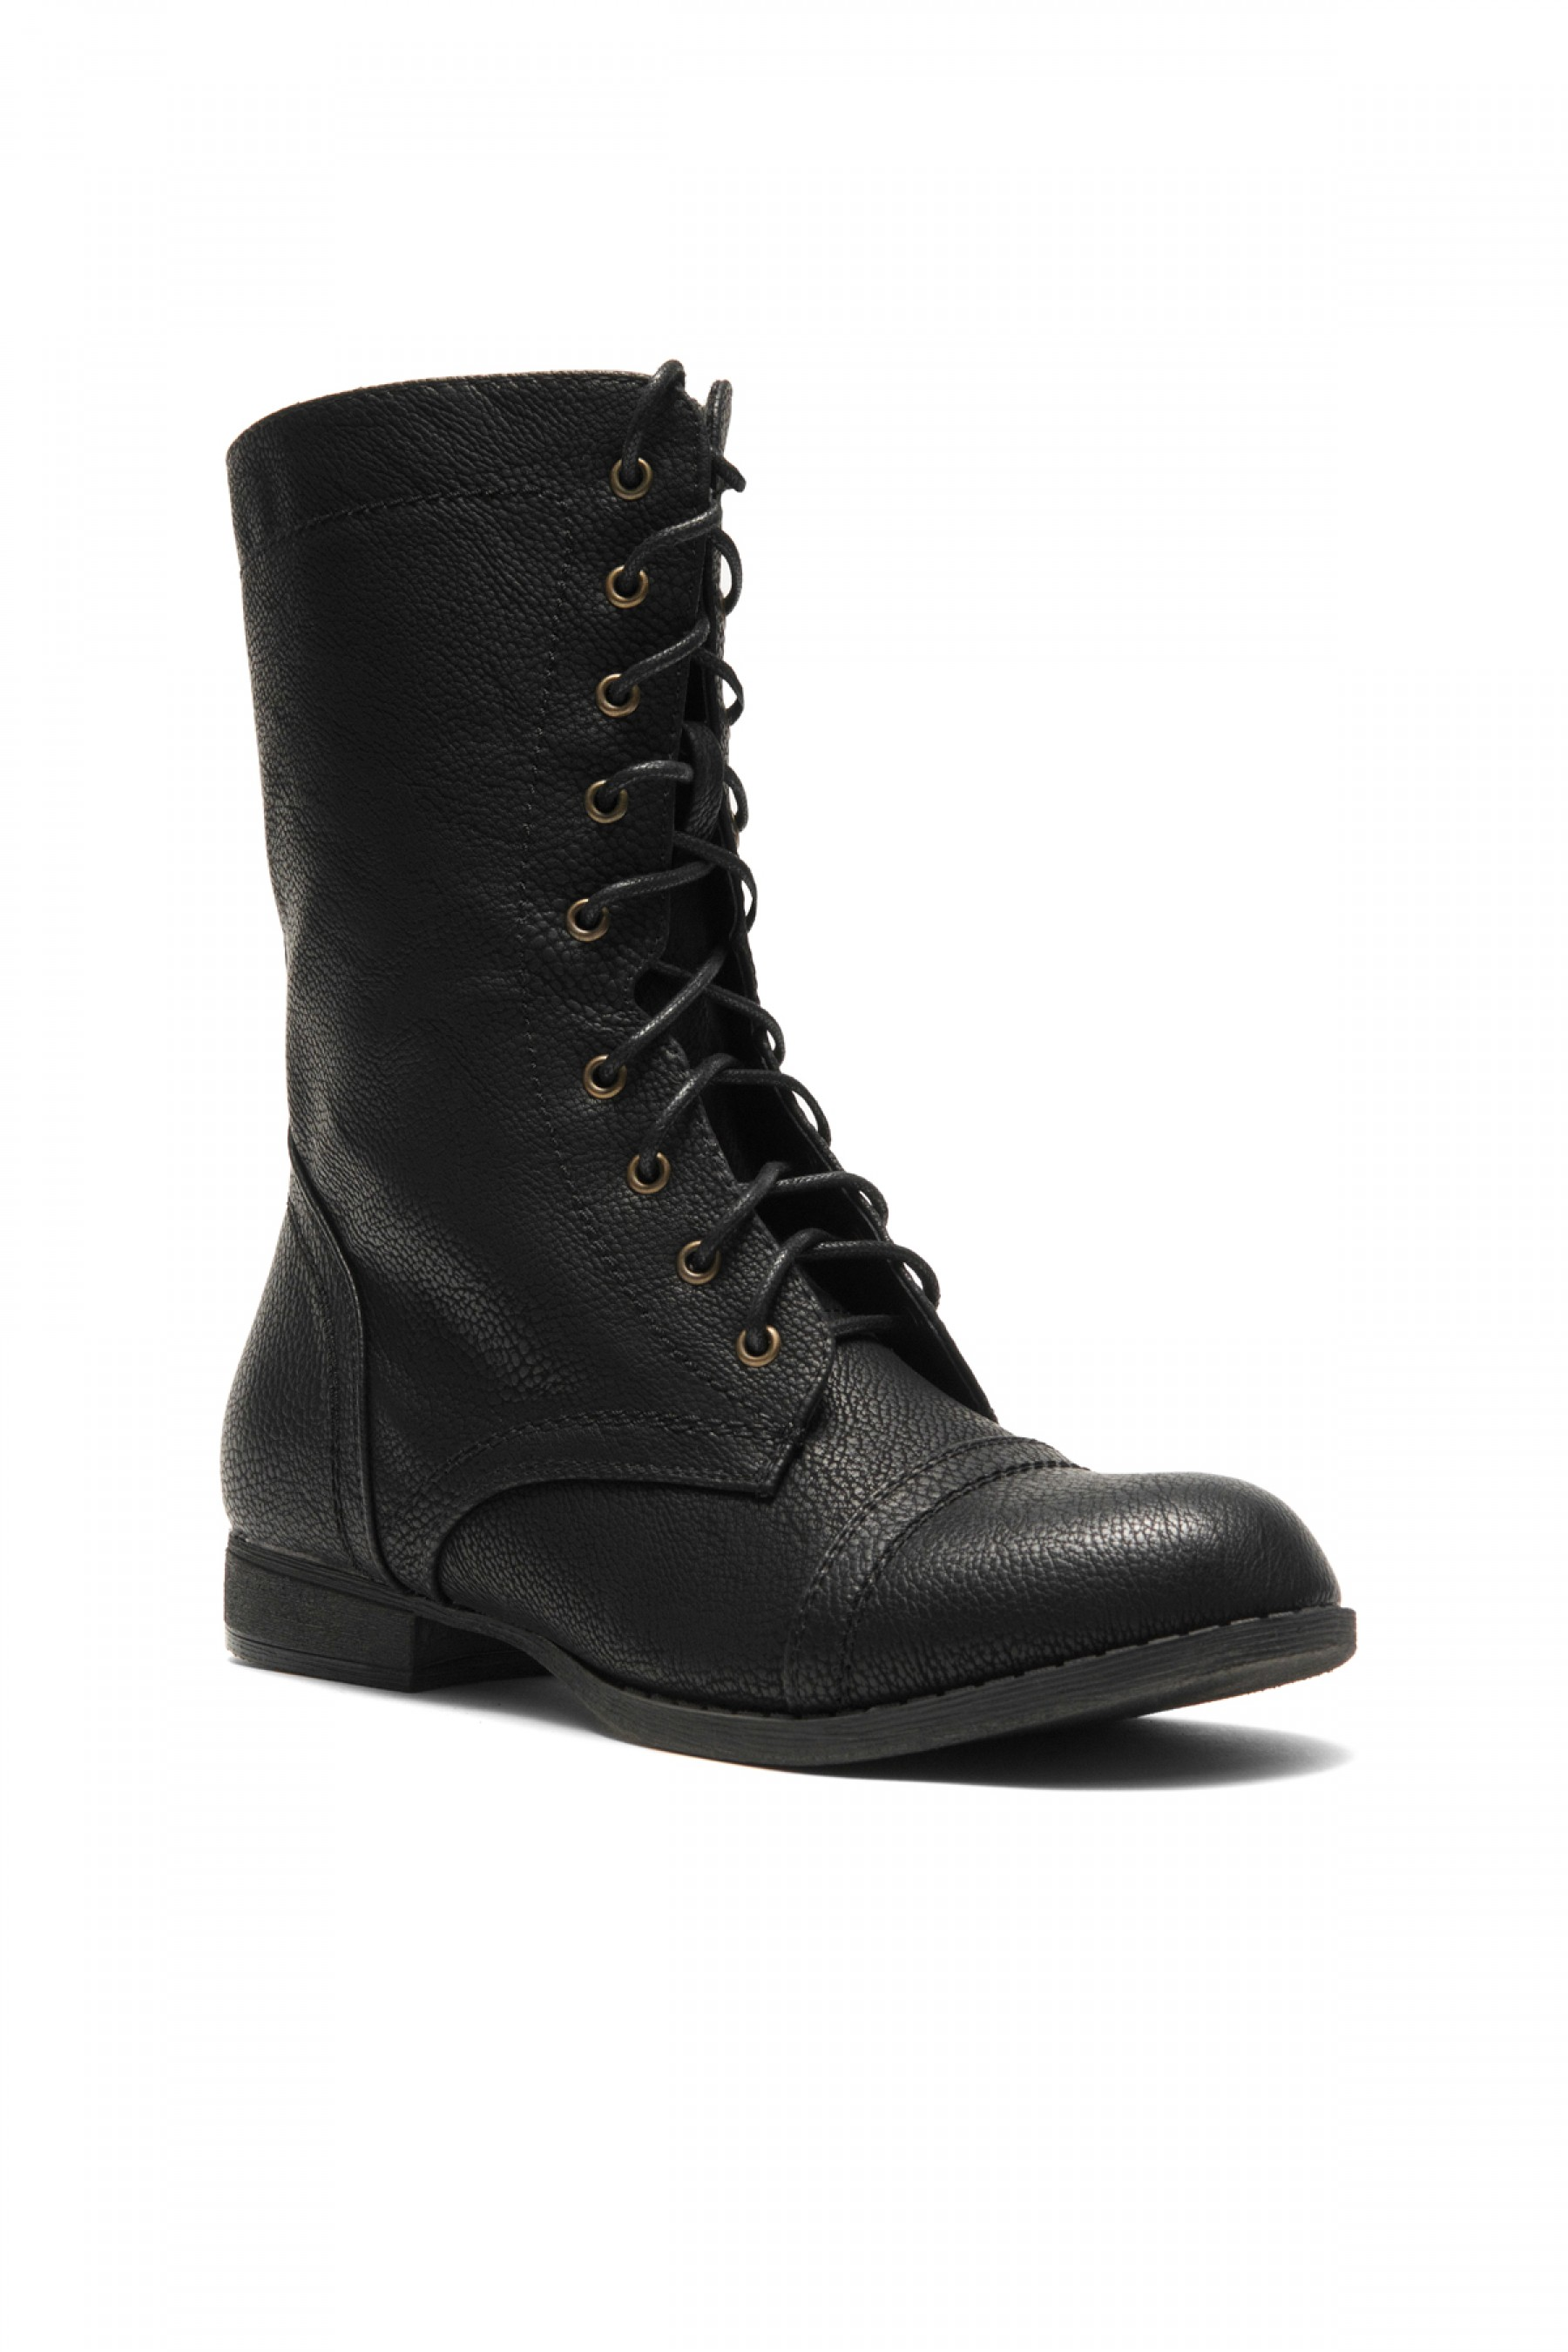 HerStyle Korraa-2 Military Lace up Combat Boots (Black)